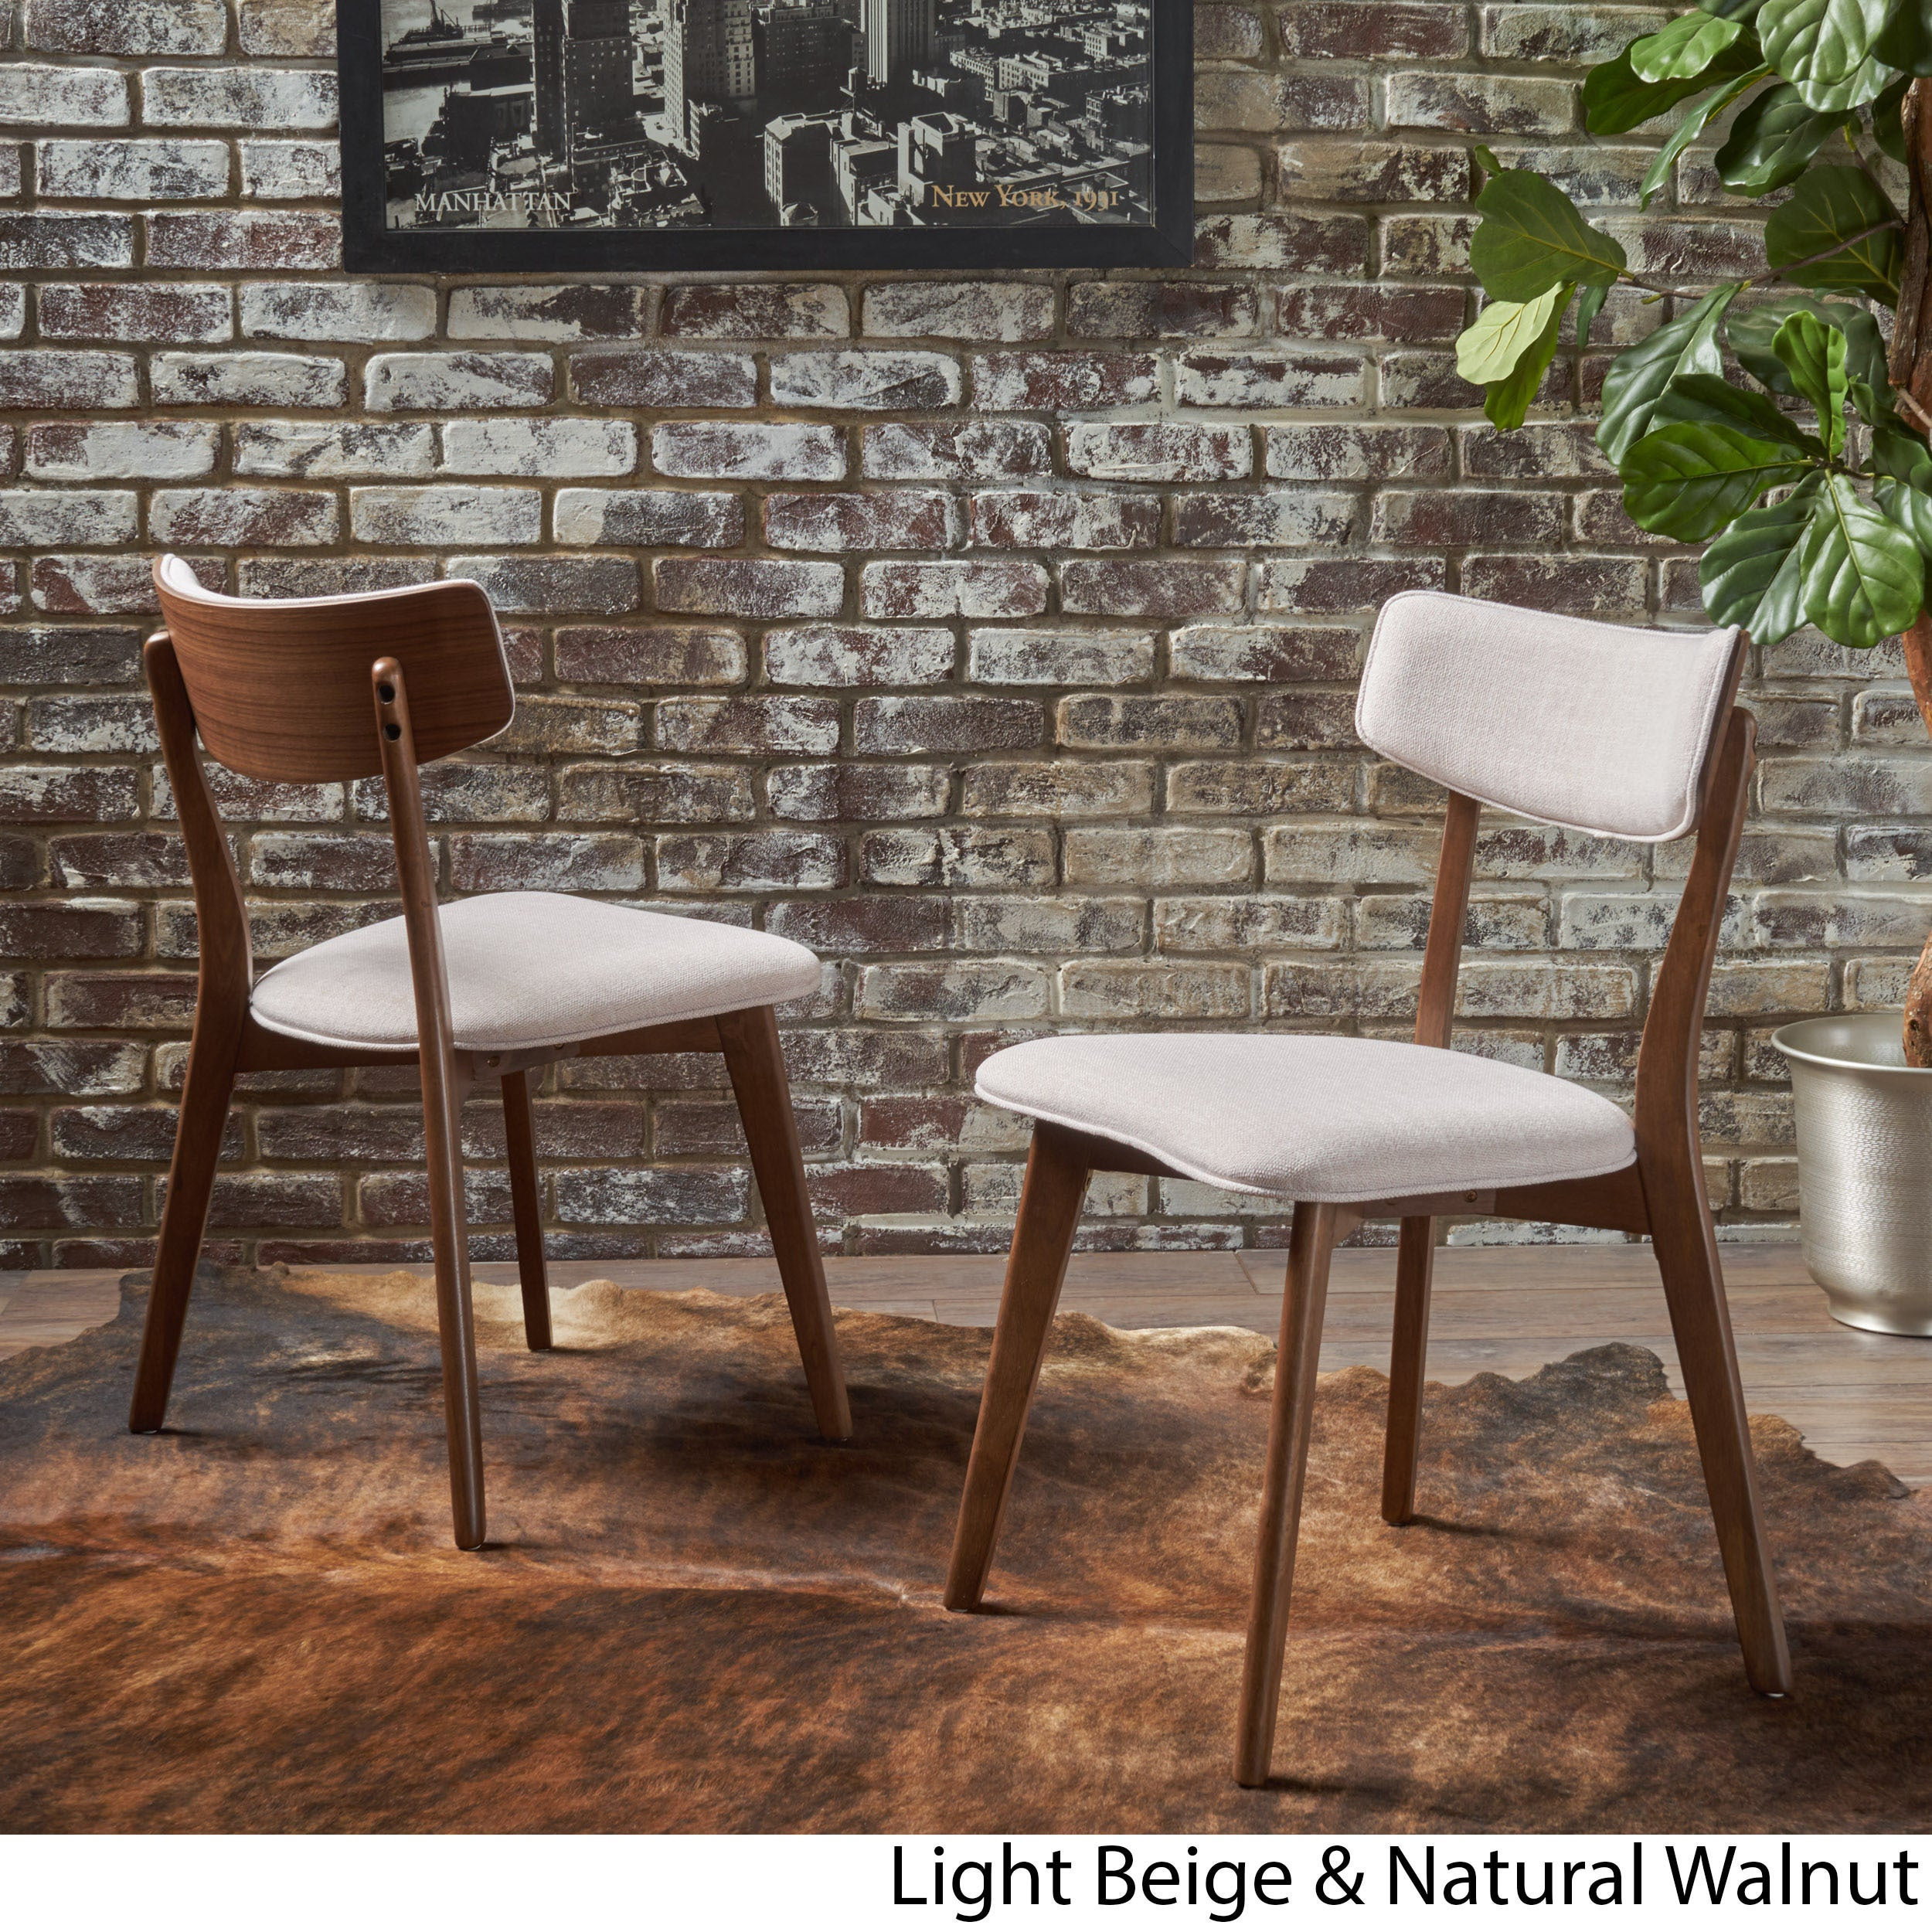 77b7aaacd426 Chazz Mid-century Fabric Dining Chair by Christopher Knight Home (Set of 2)